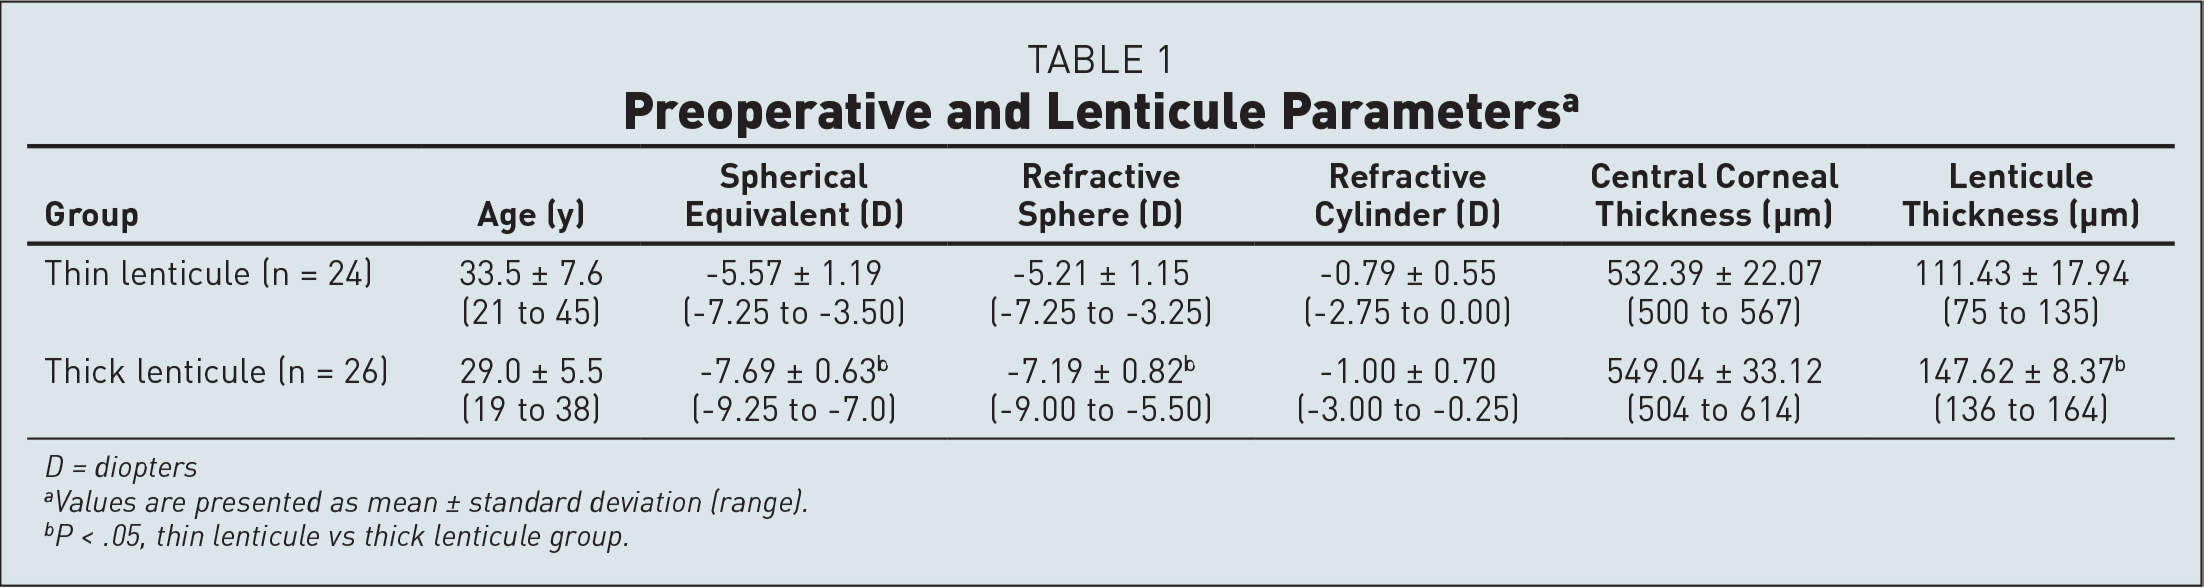 Preoperative and Lenticule Parametersa